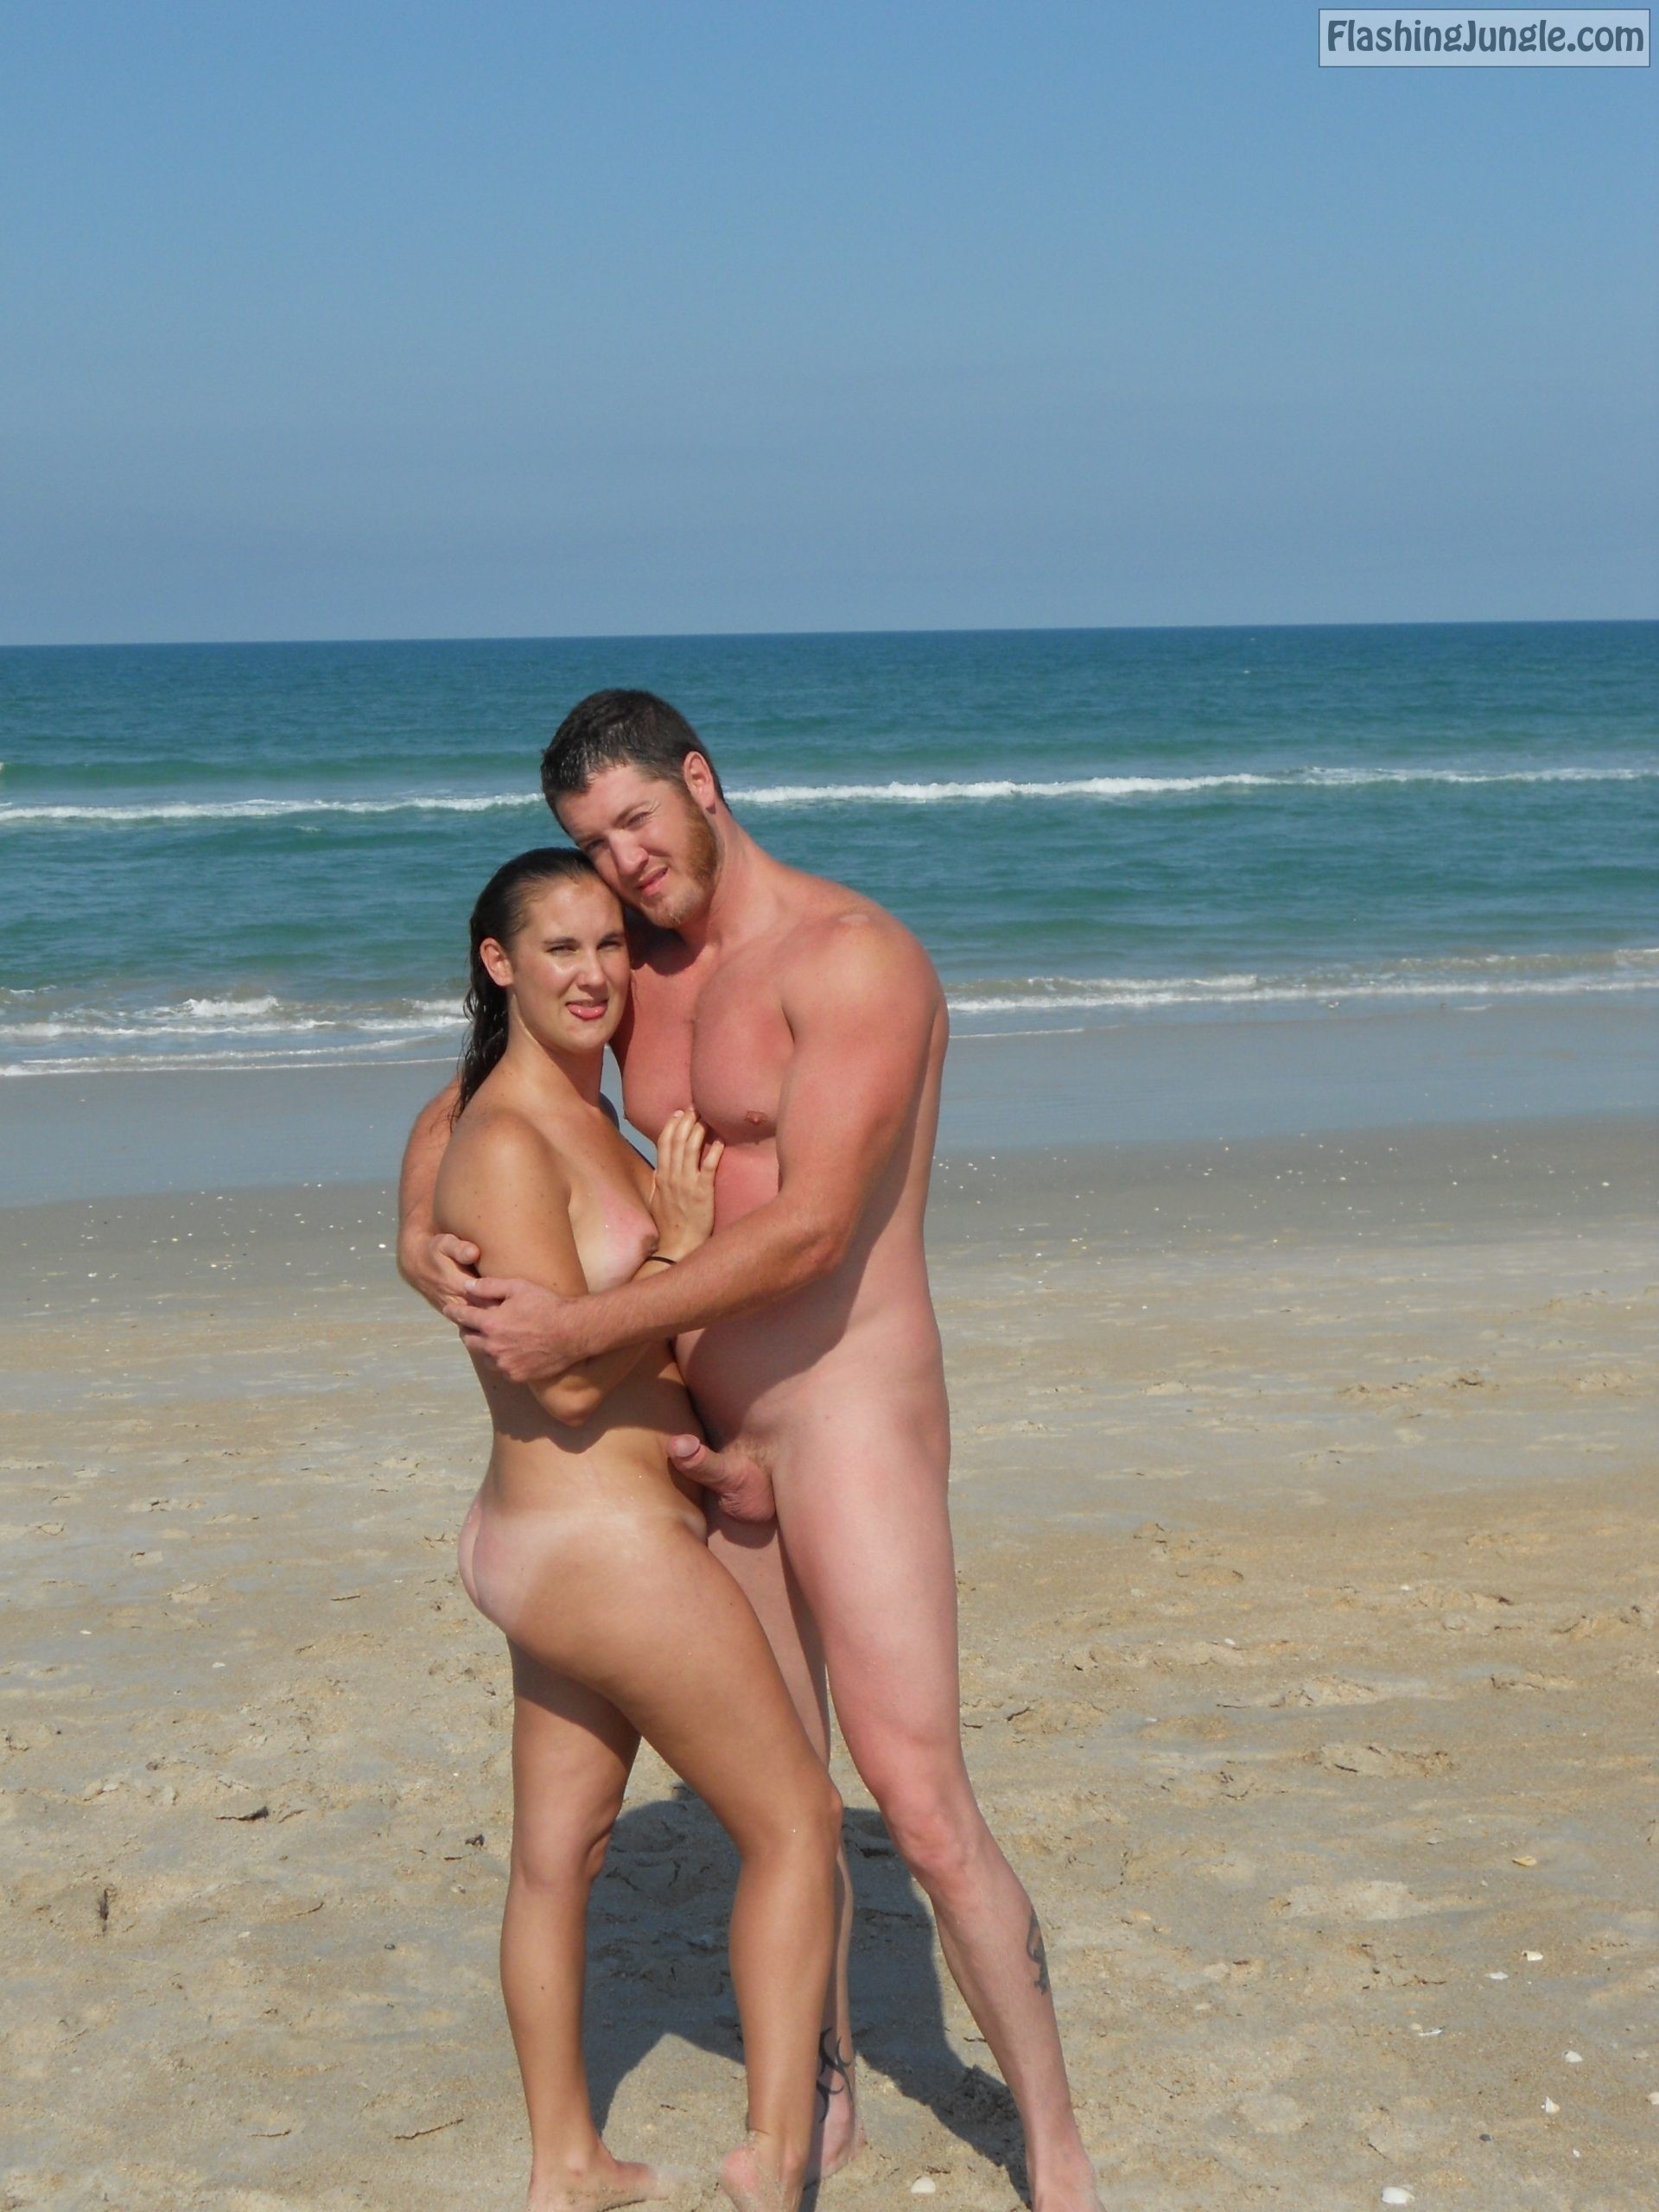 Beach boner amateur couple